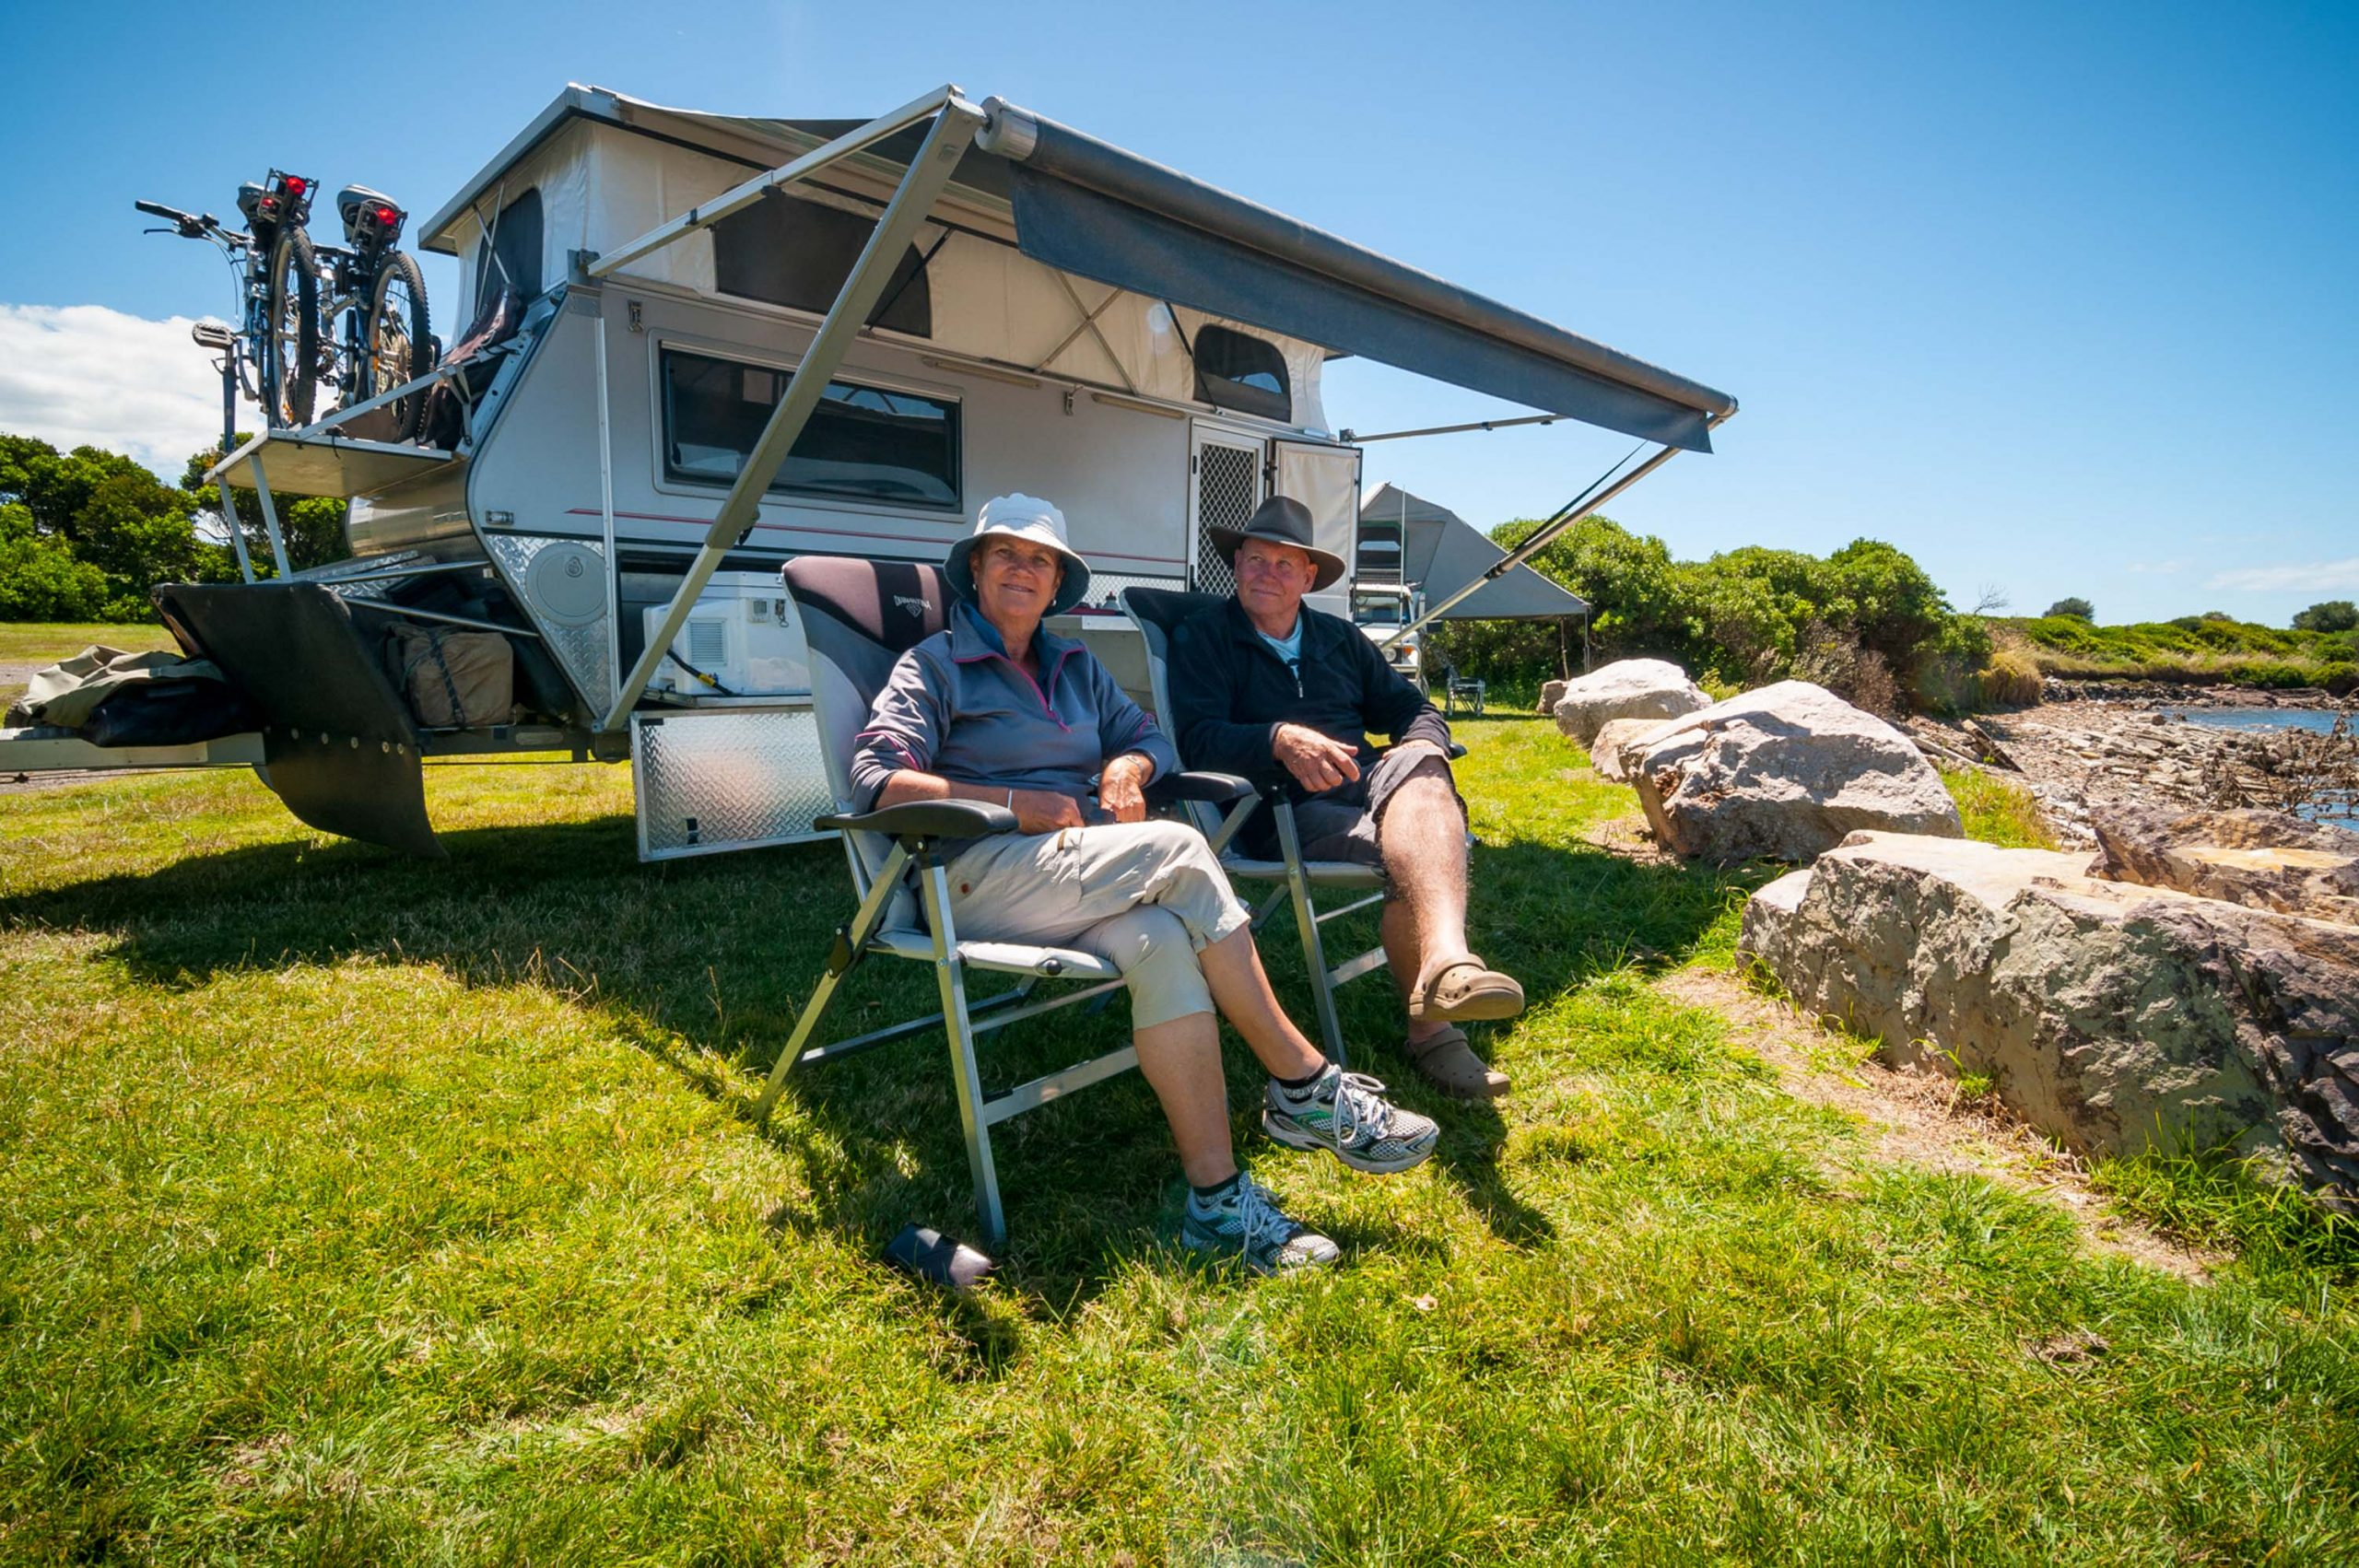 THE BIG DECISION: CARAVAN OR CAMPER TRAILER?